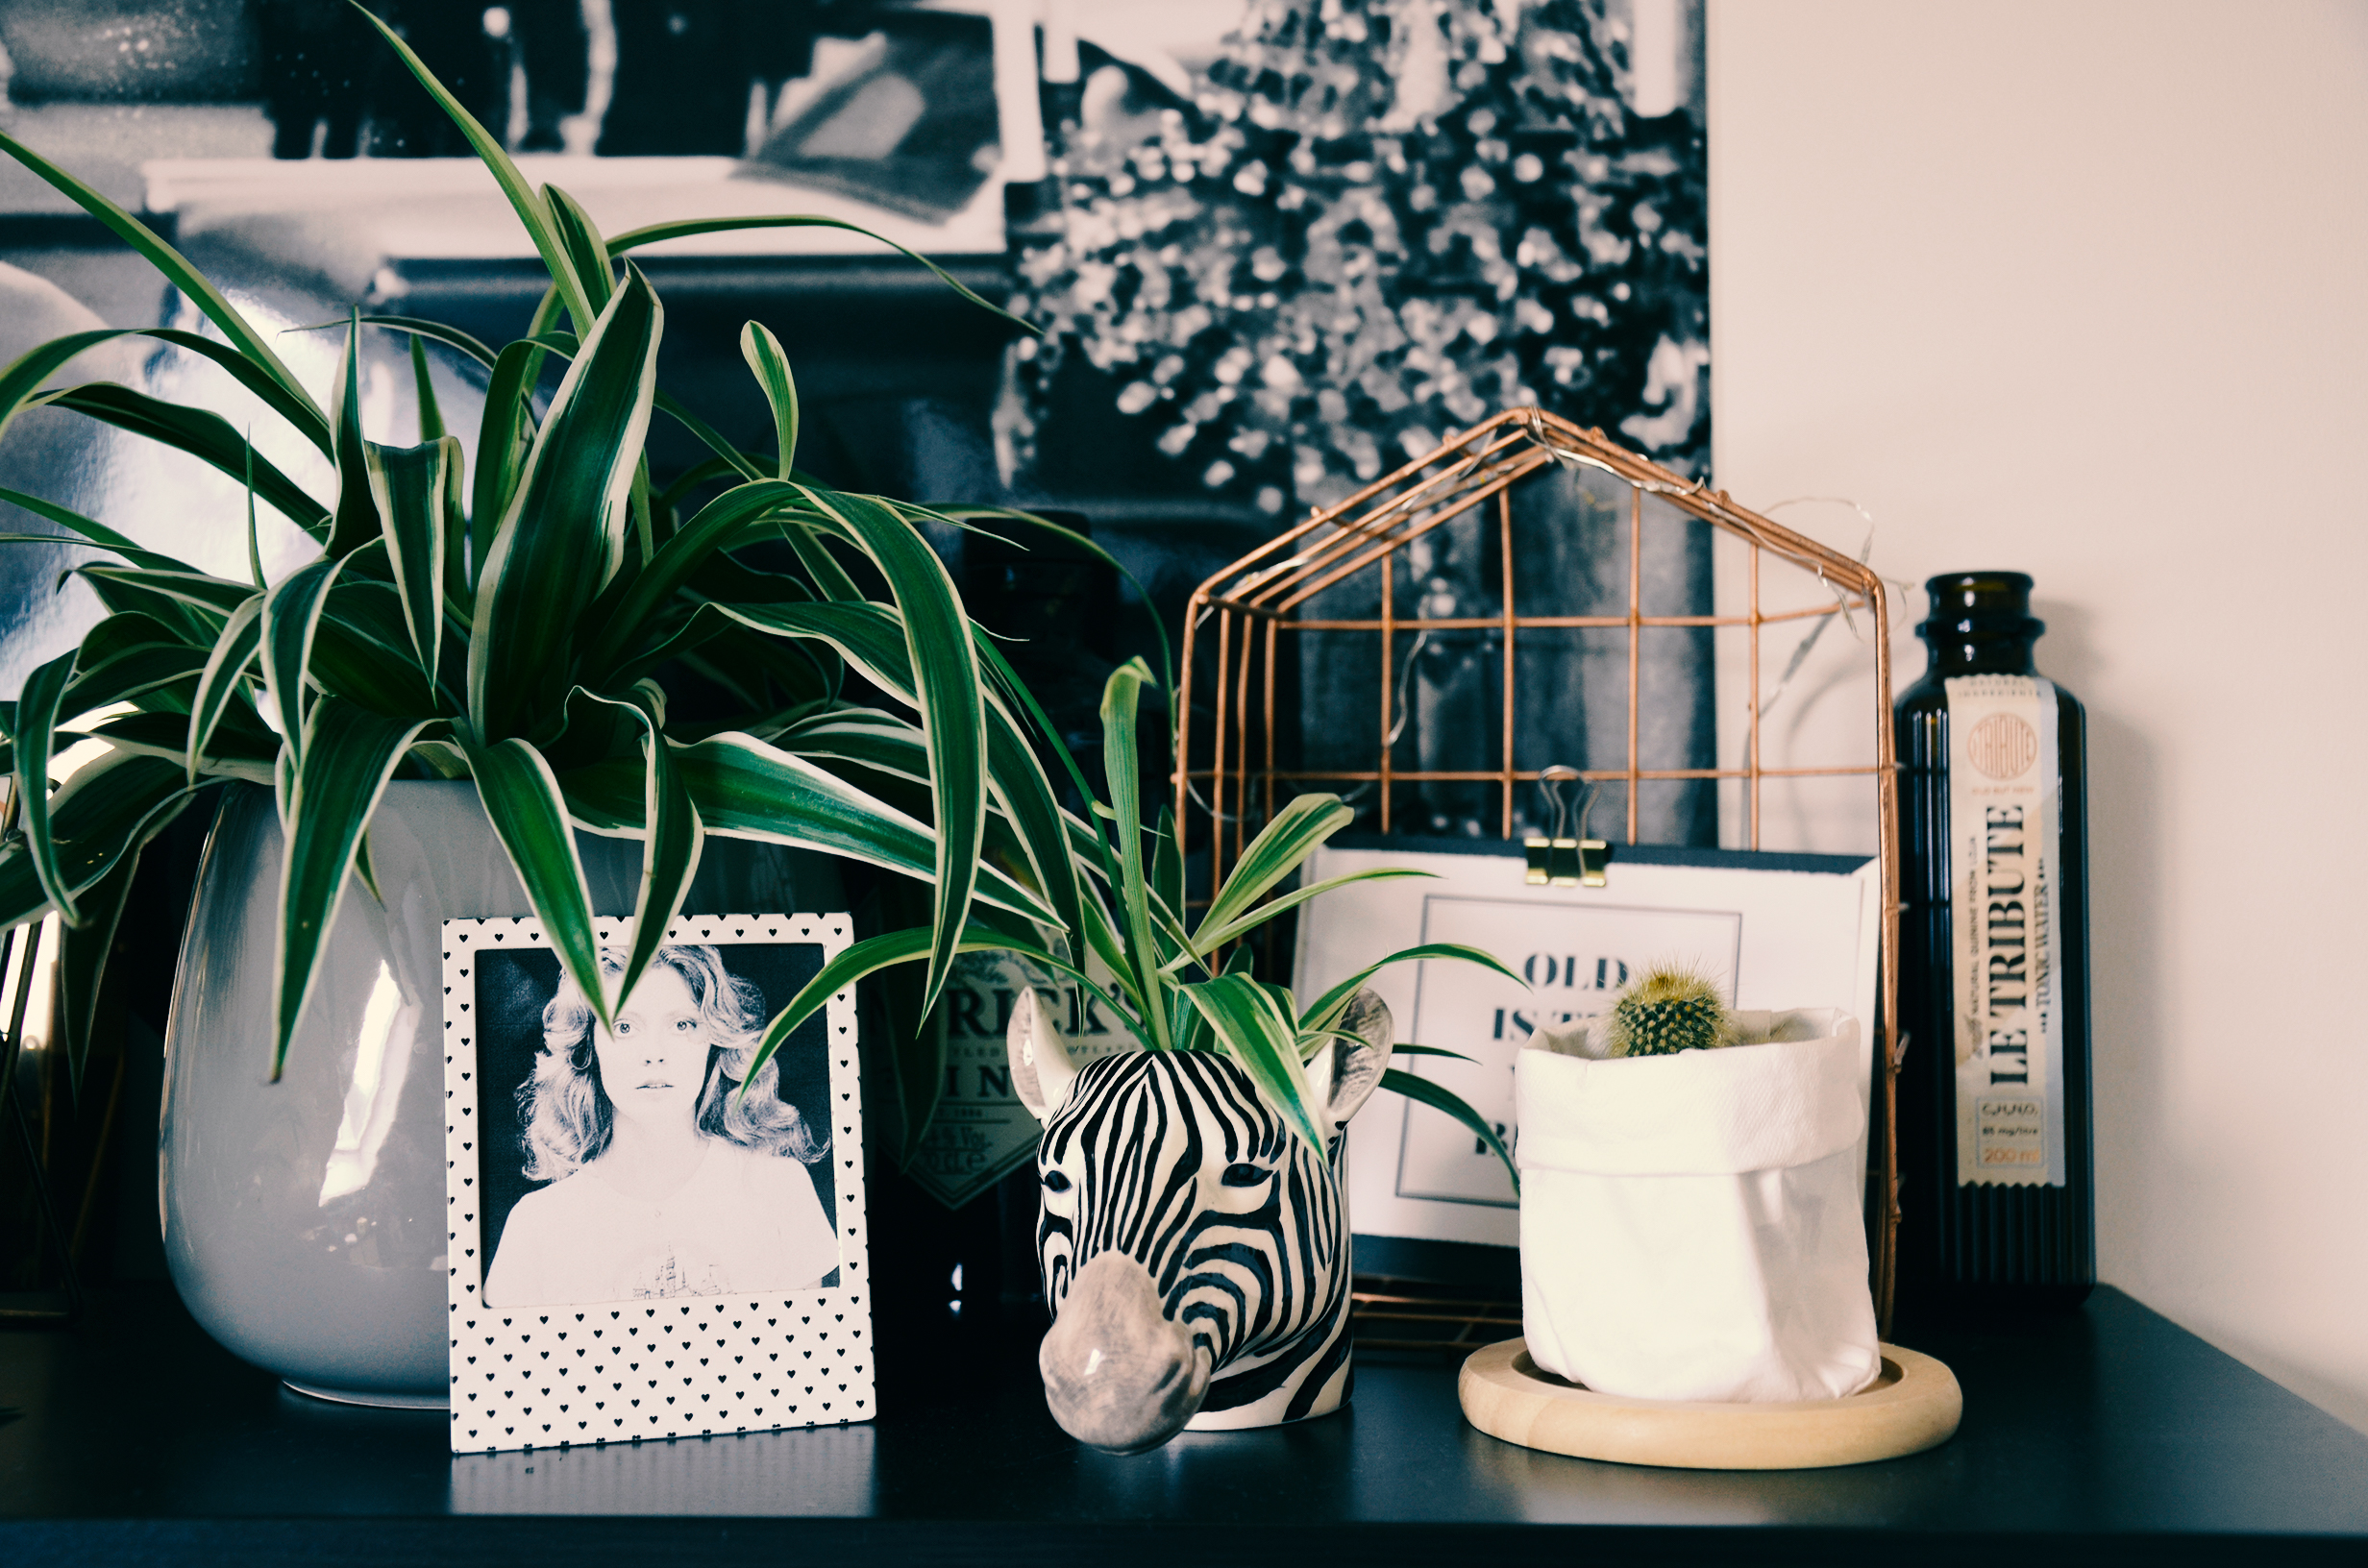 Zebra head next to a spider plant